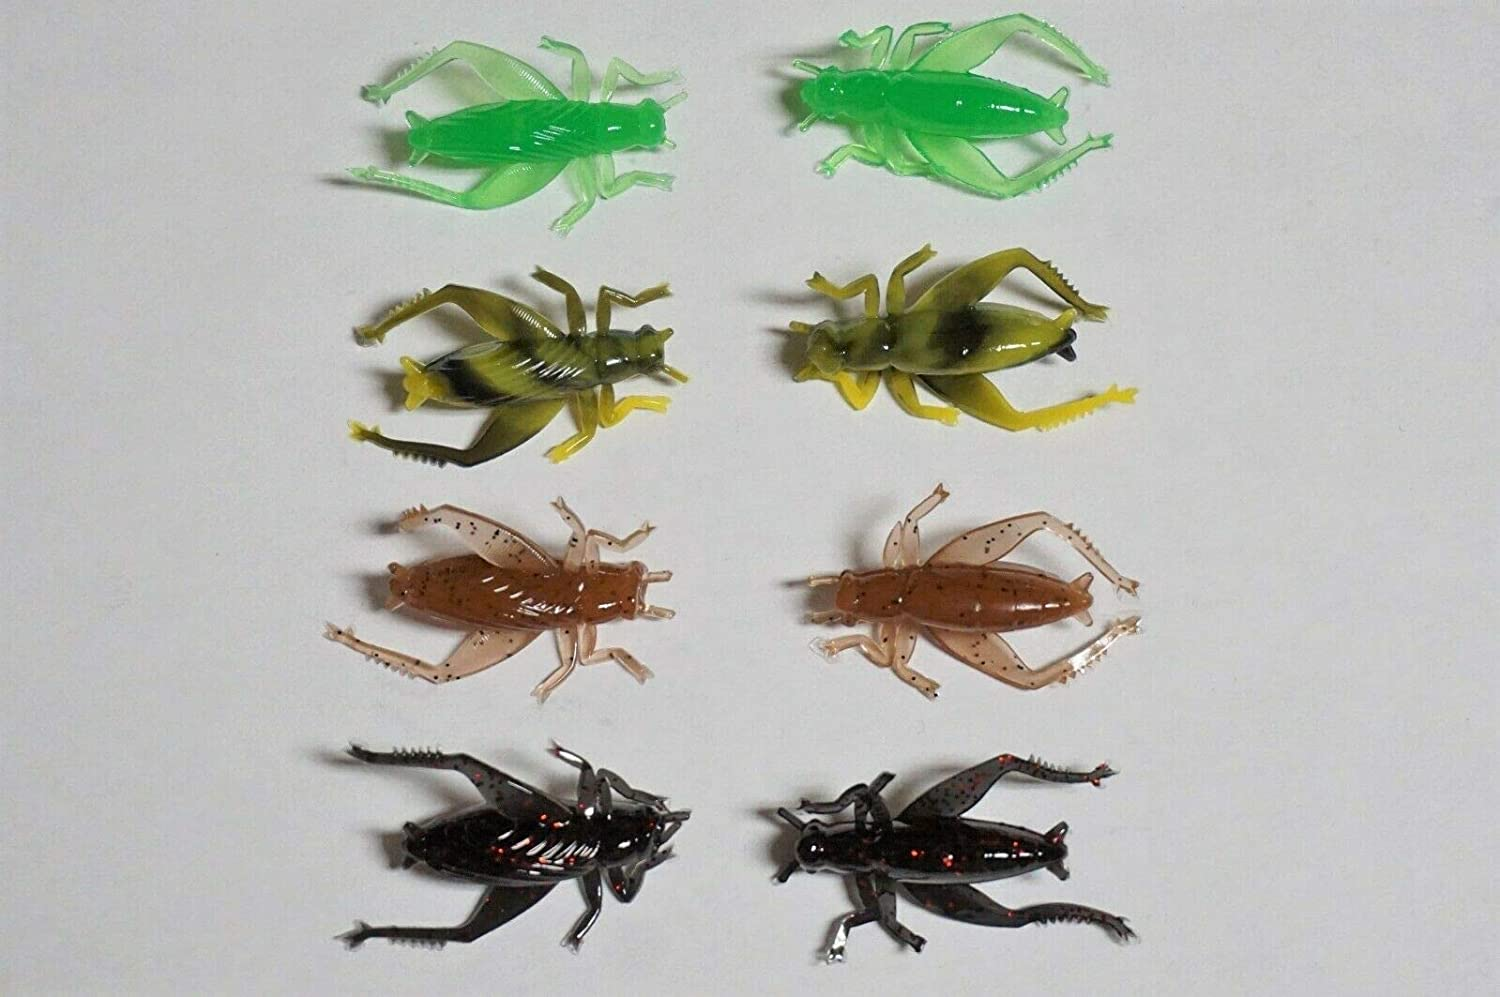 4 Colors 100-1 Cricket Soft Plastic Bass//Crappie Fishing Tackle Lures